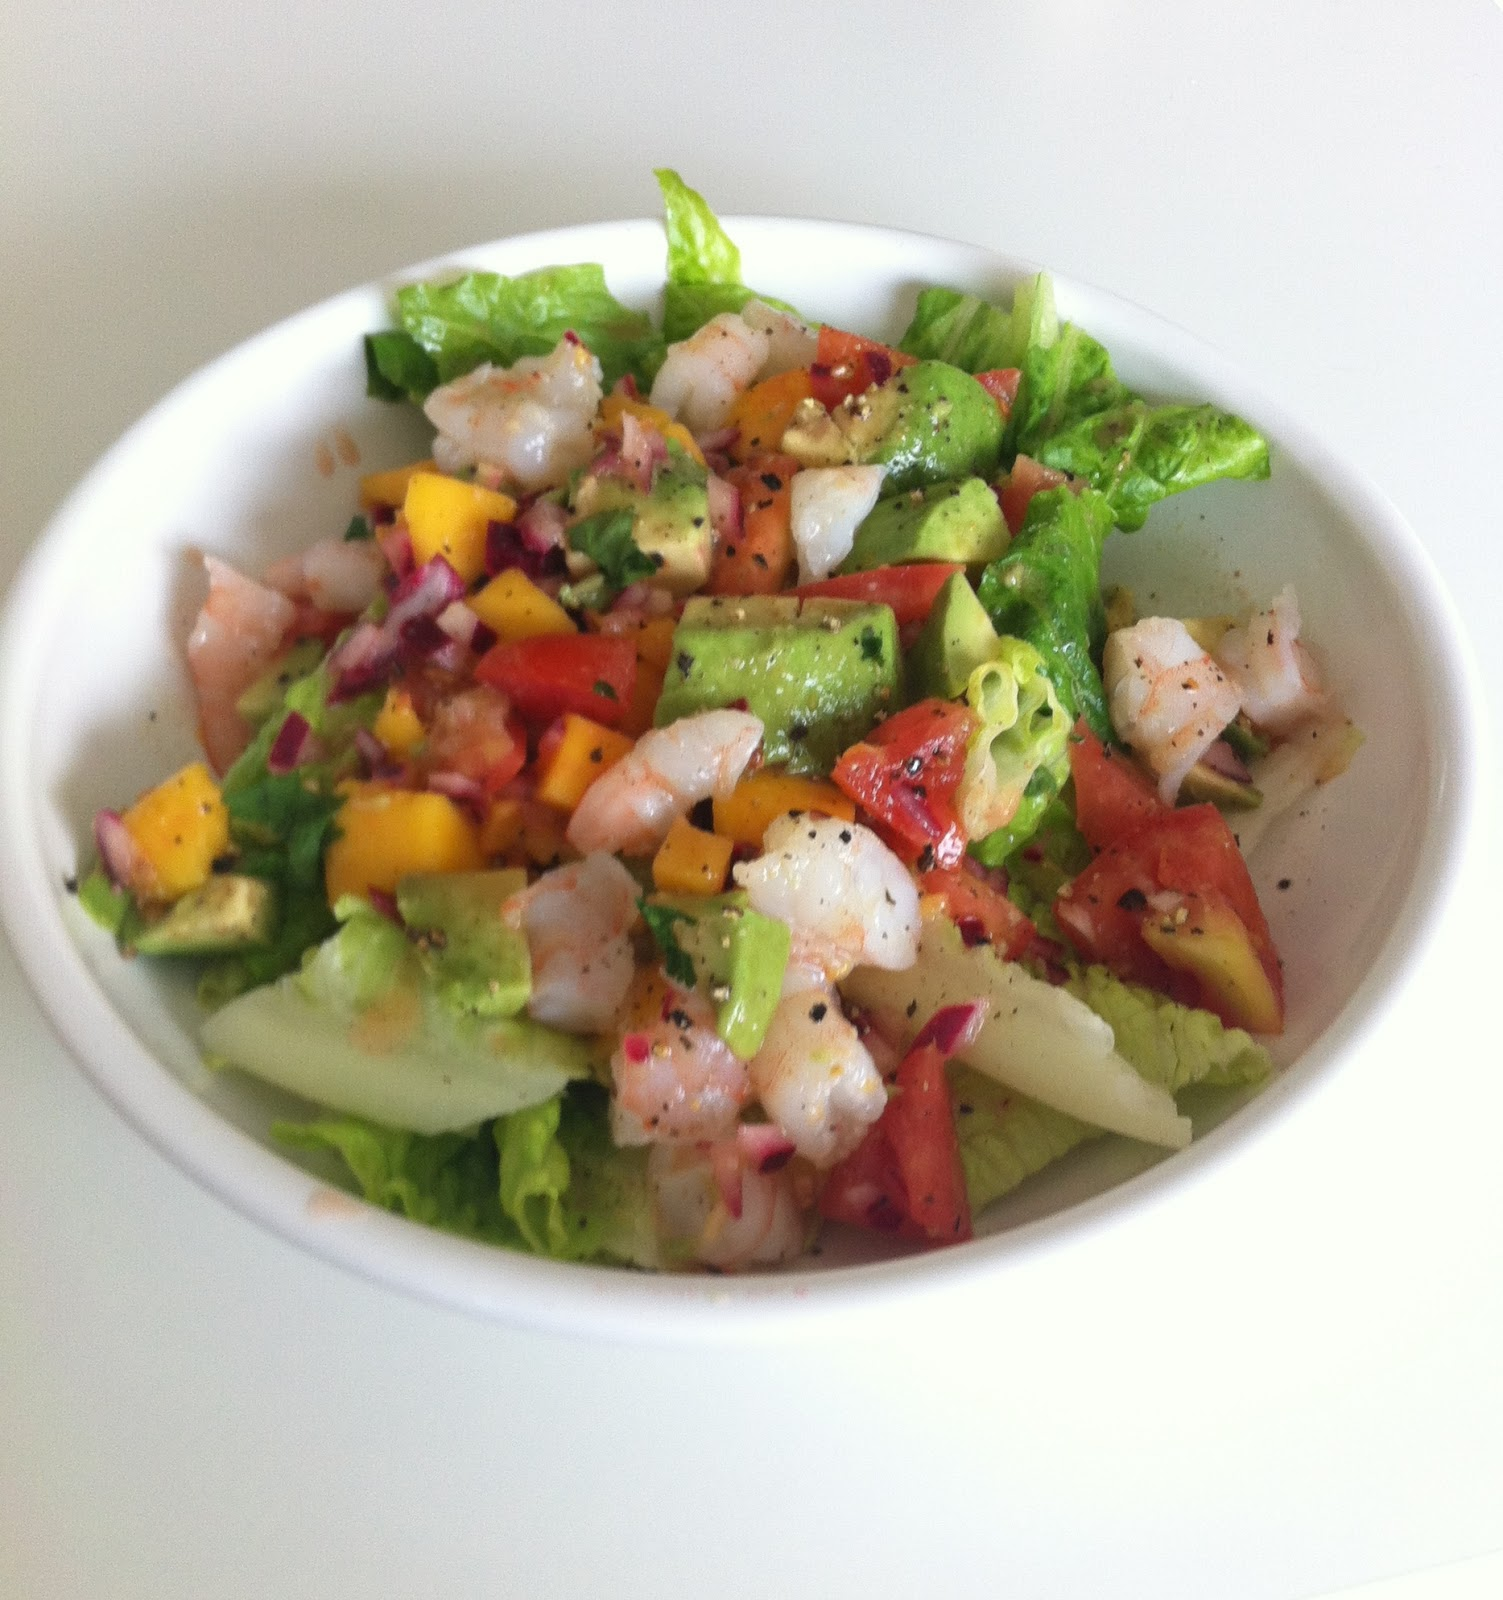 Girl In The City: Zesty Lime, Shrimp and Avocado Salad